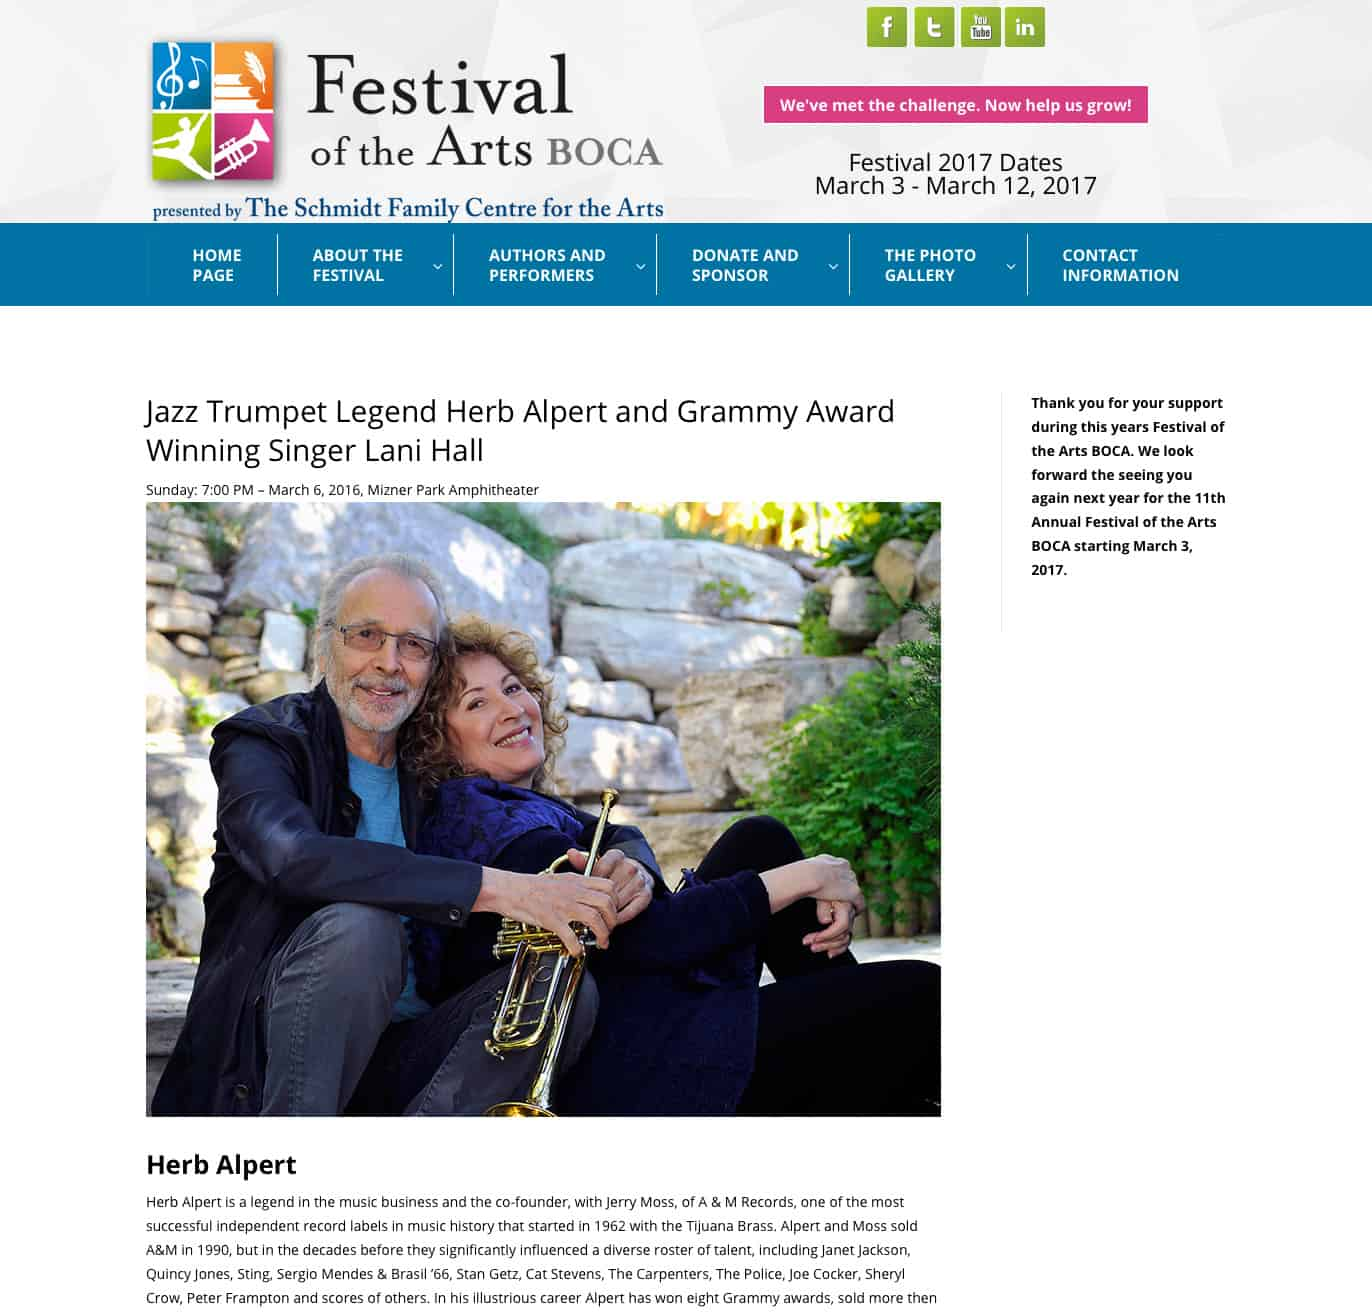 Festival of the Arts BOCA Herb Alpert Lani Hall artists page